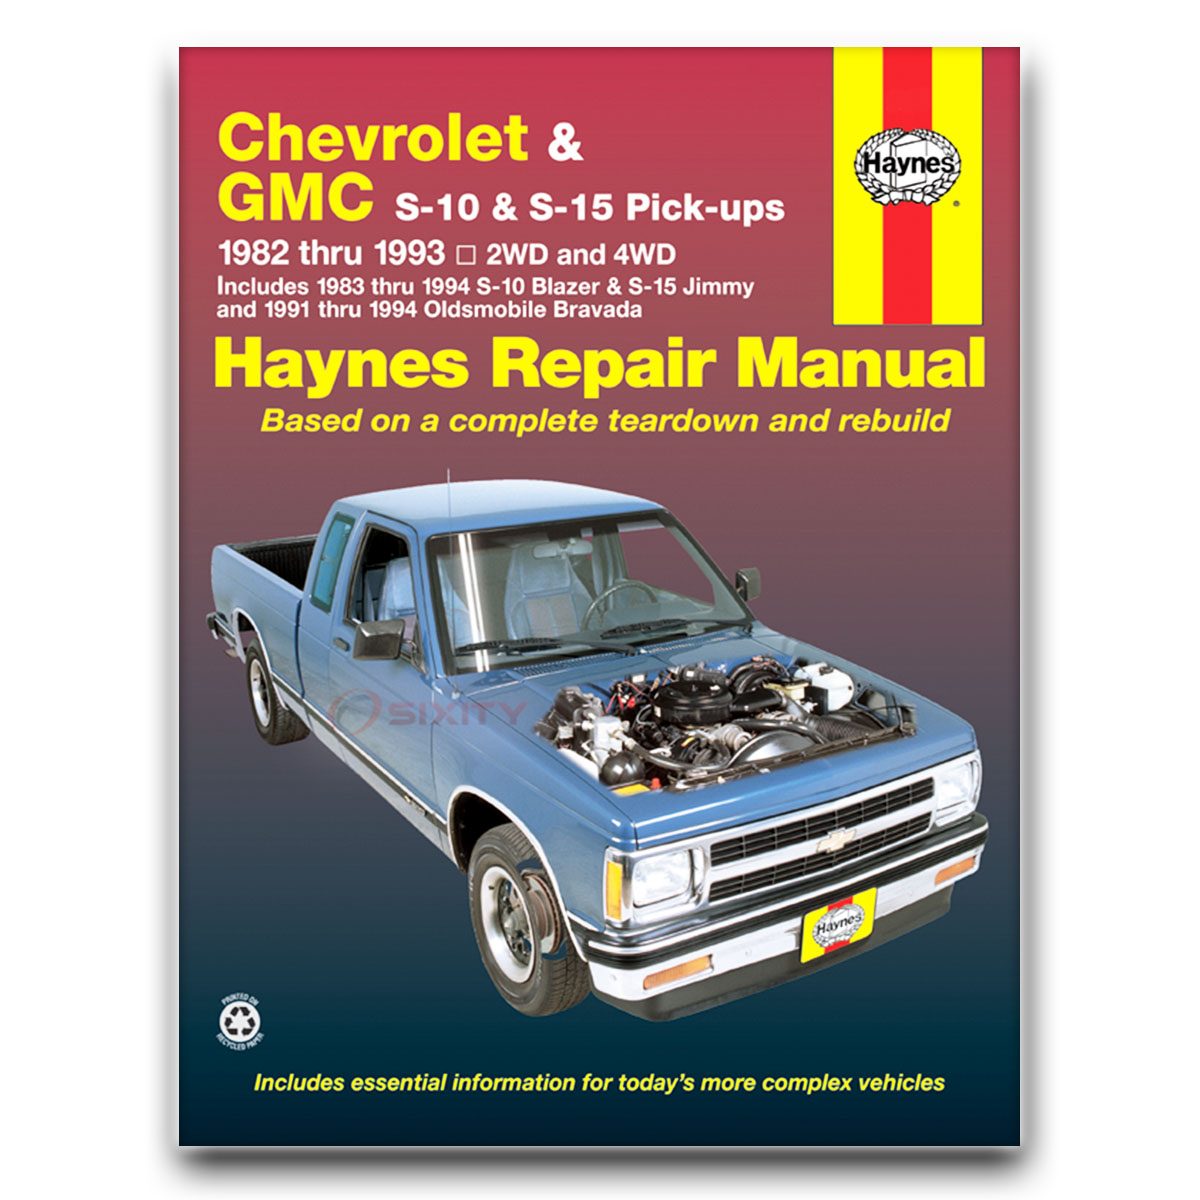 chevy s10 blazer haynes repair manual tahoe lt sport high country rh ebay com 1992 chevy s10 repair manual pdf 1992 chevy s10 repair manual pdf